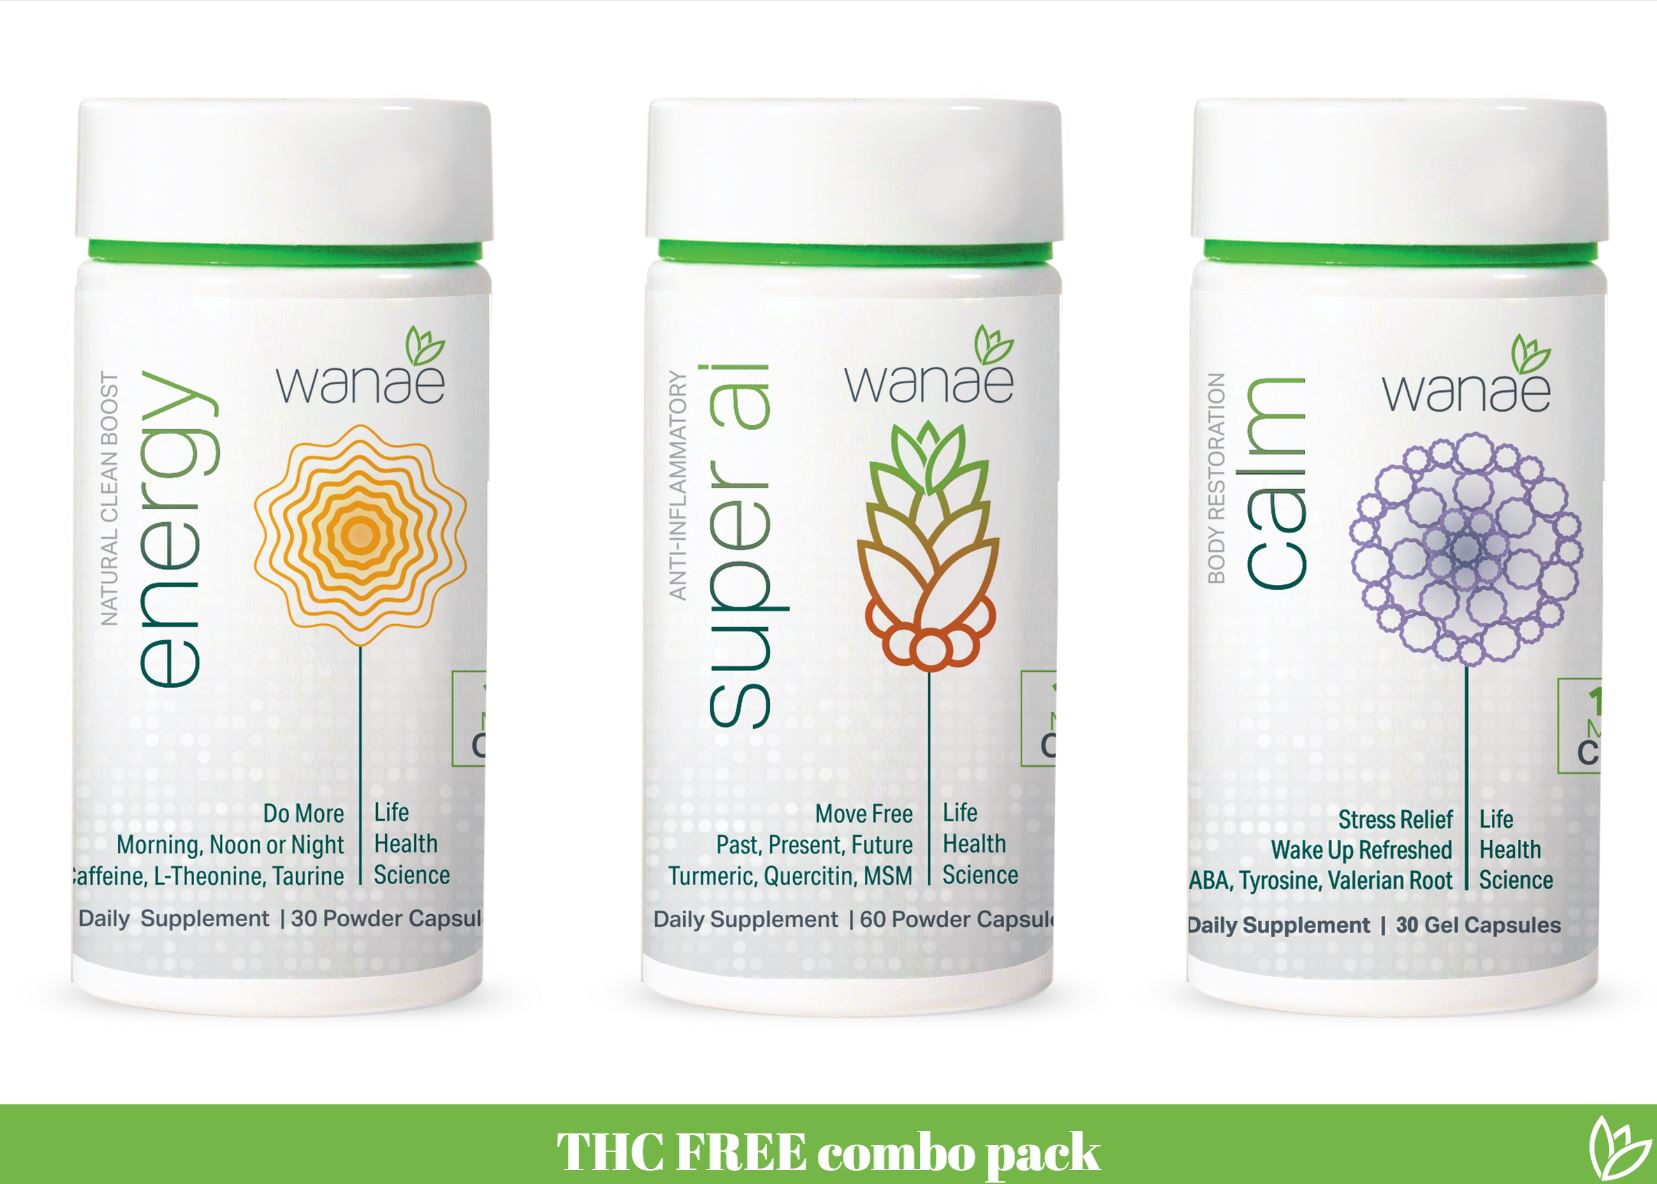 THC Free Combo Pack